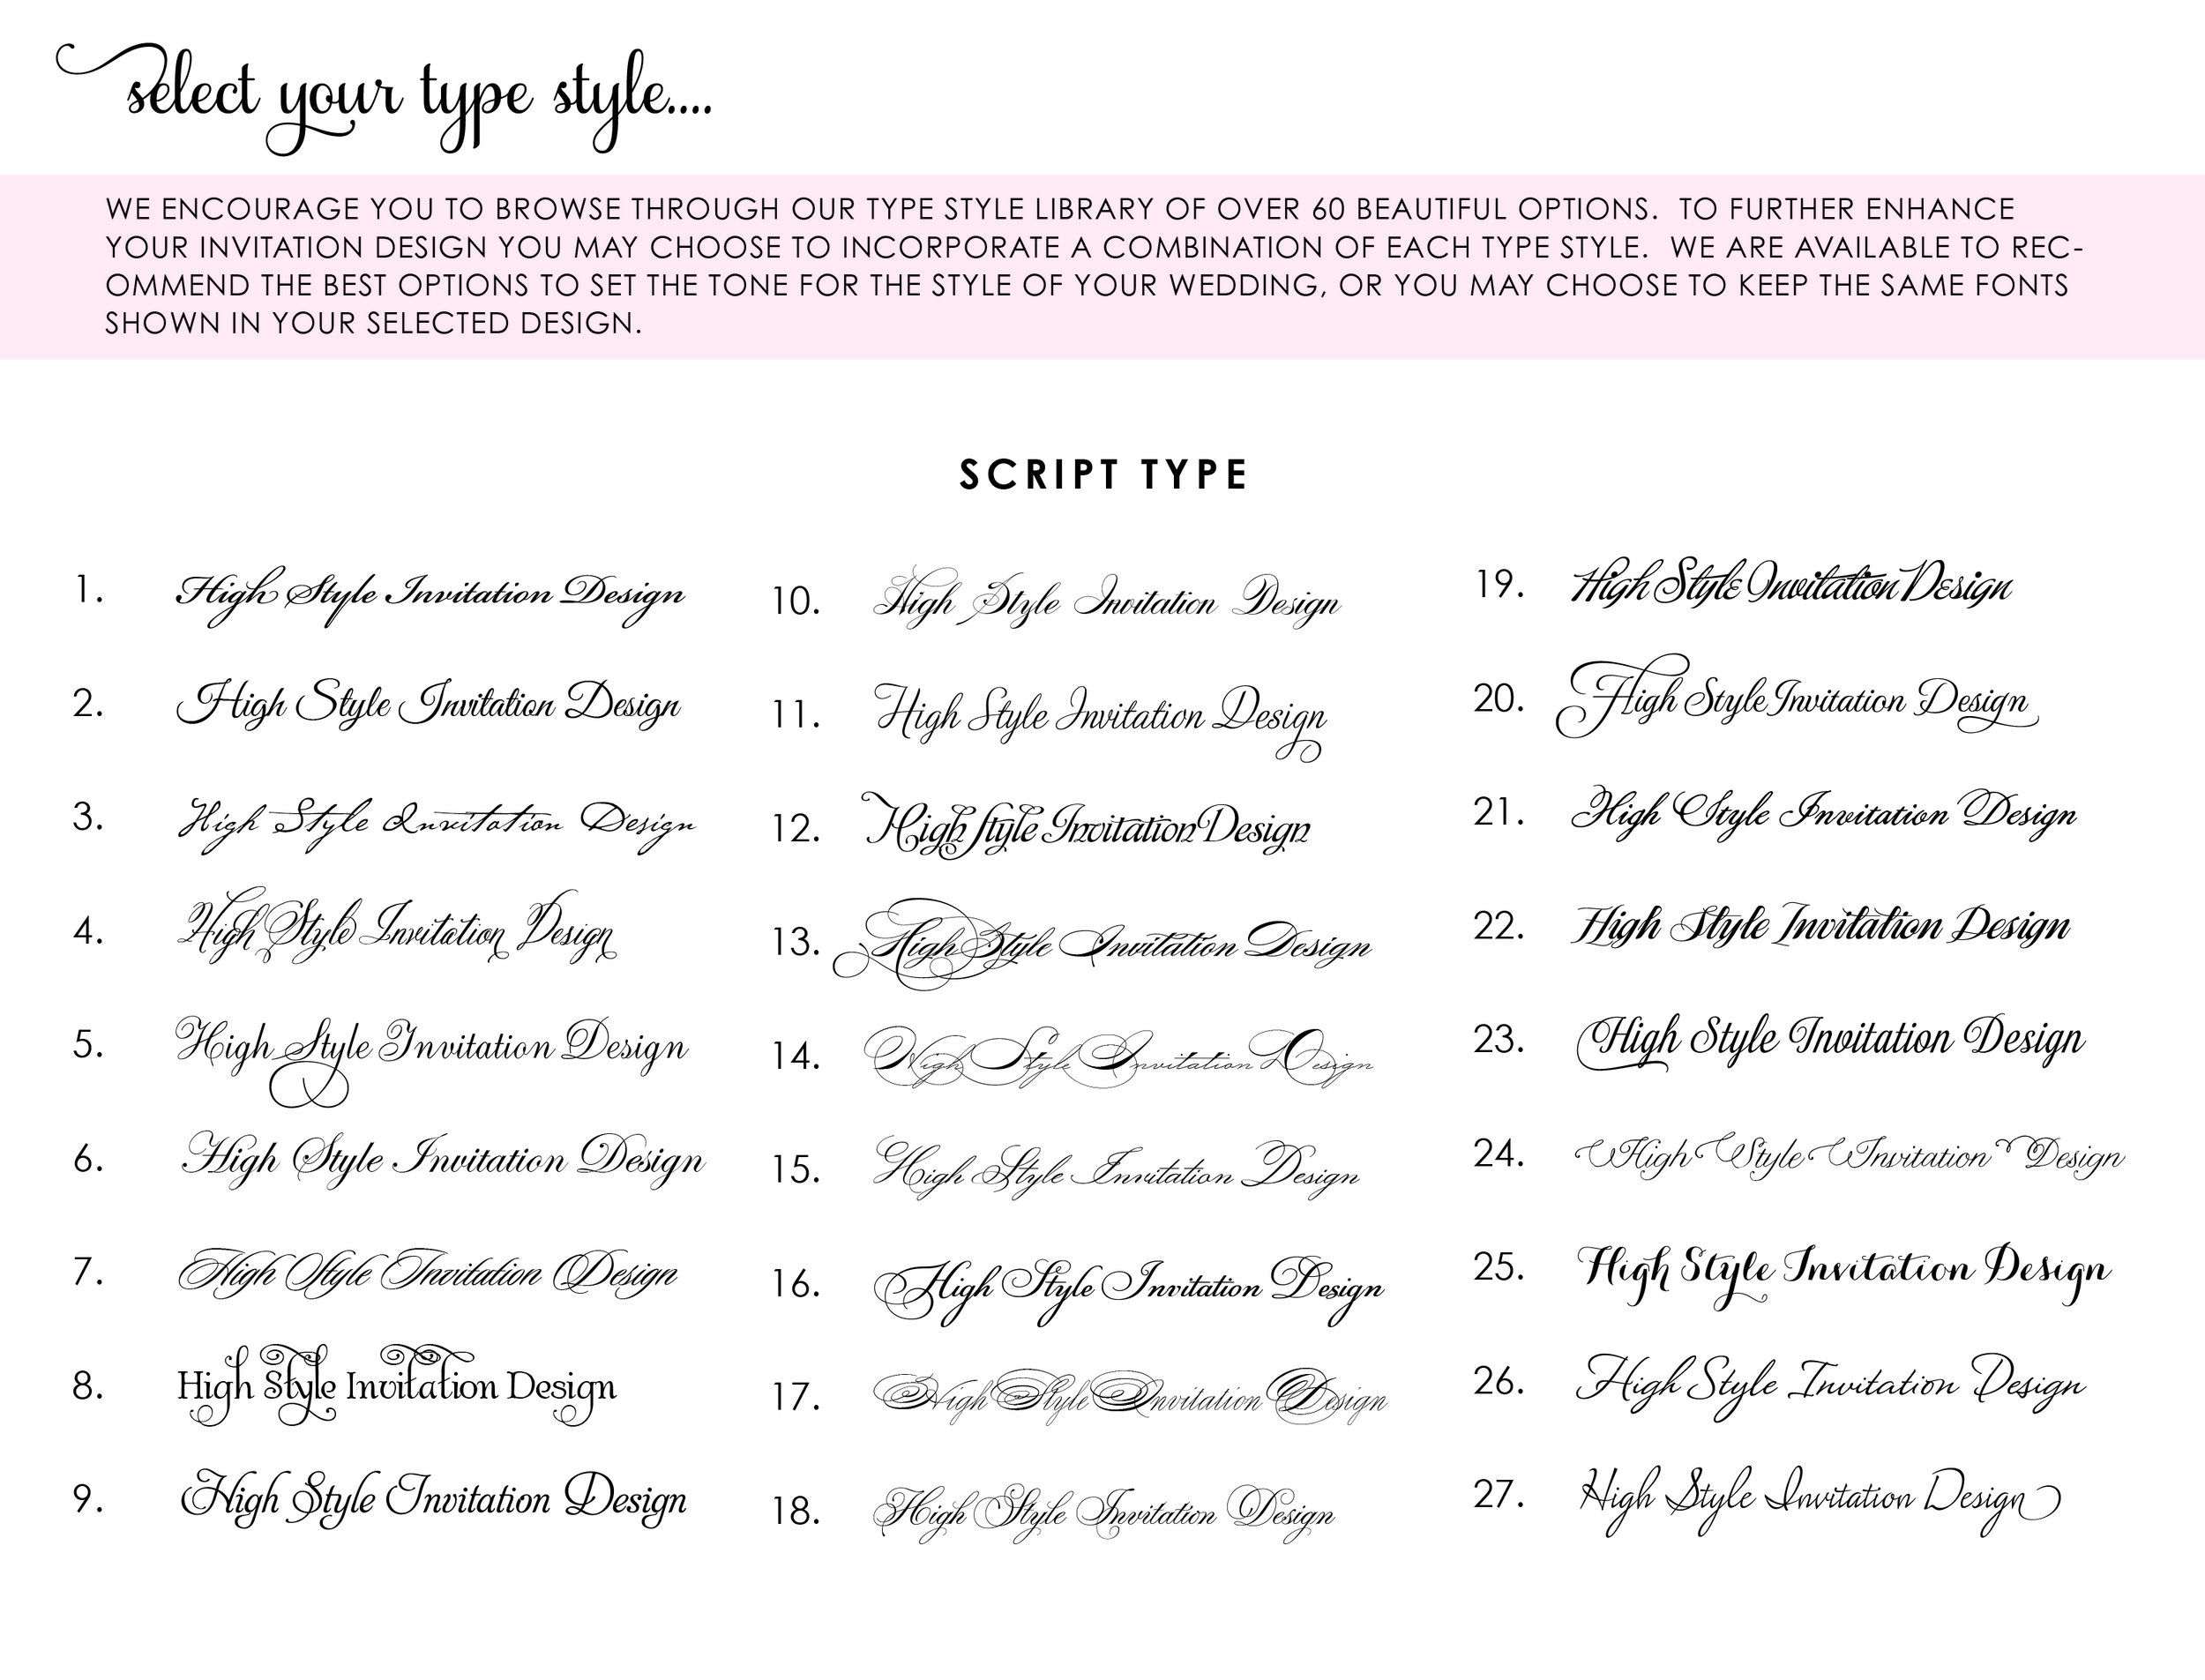 Wedding Invitation Fonts.Choosing The Right Fonts For Your Wedding Invitations The Plume